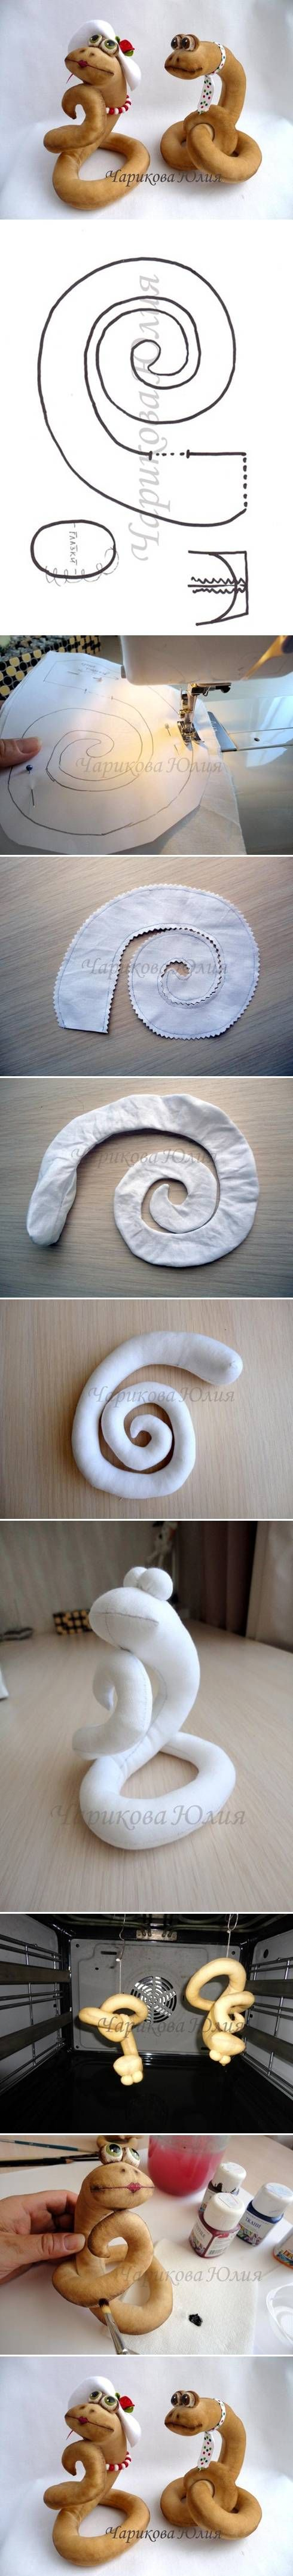 DIY Sew Fabric Snake